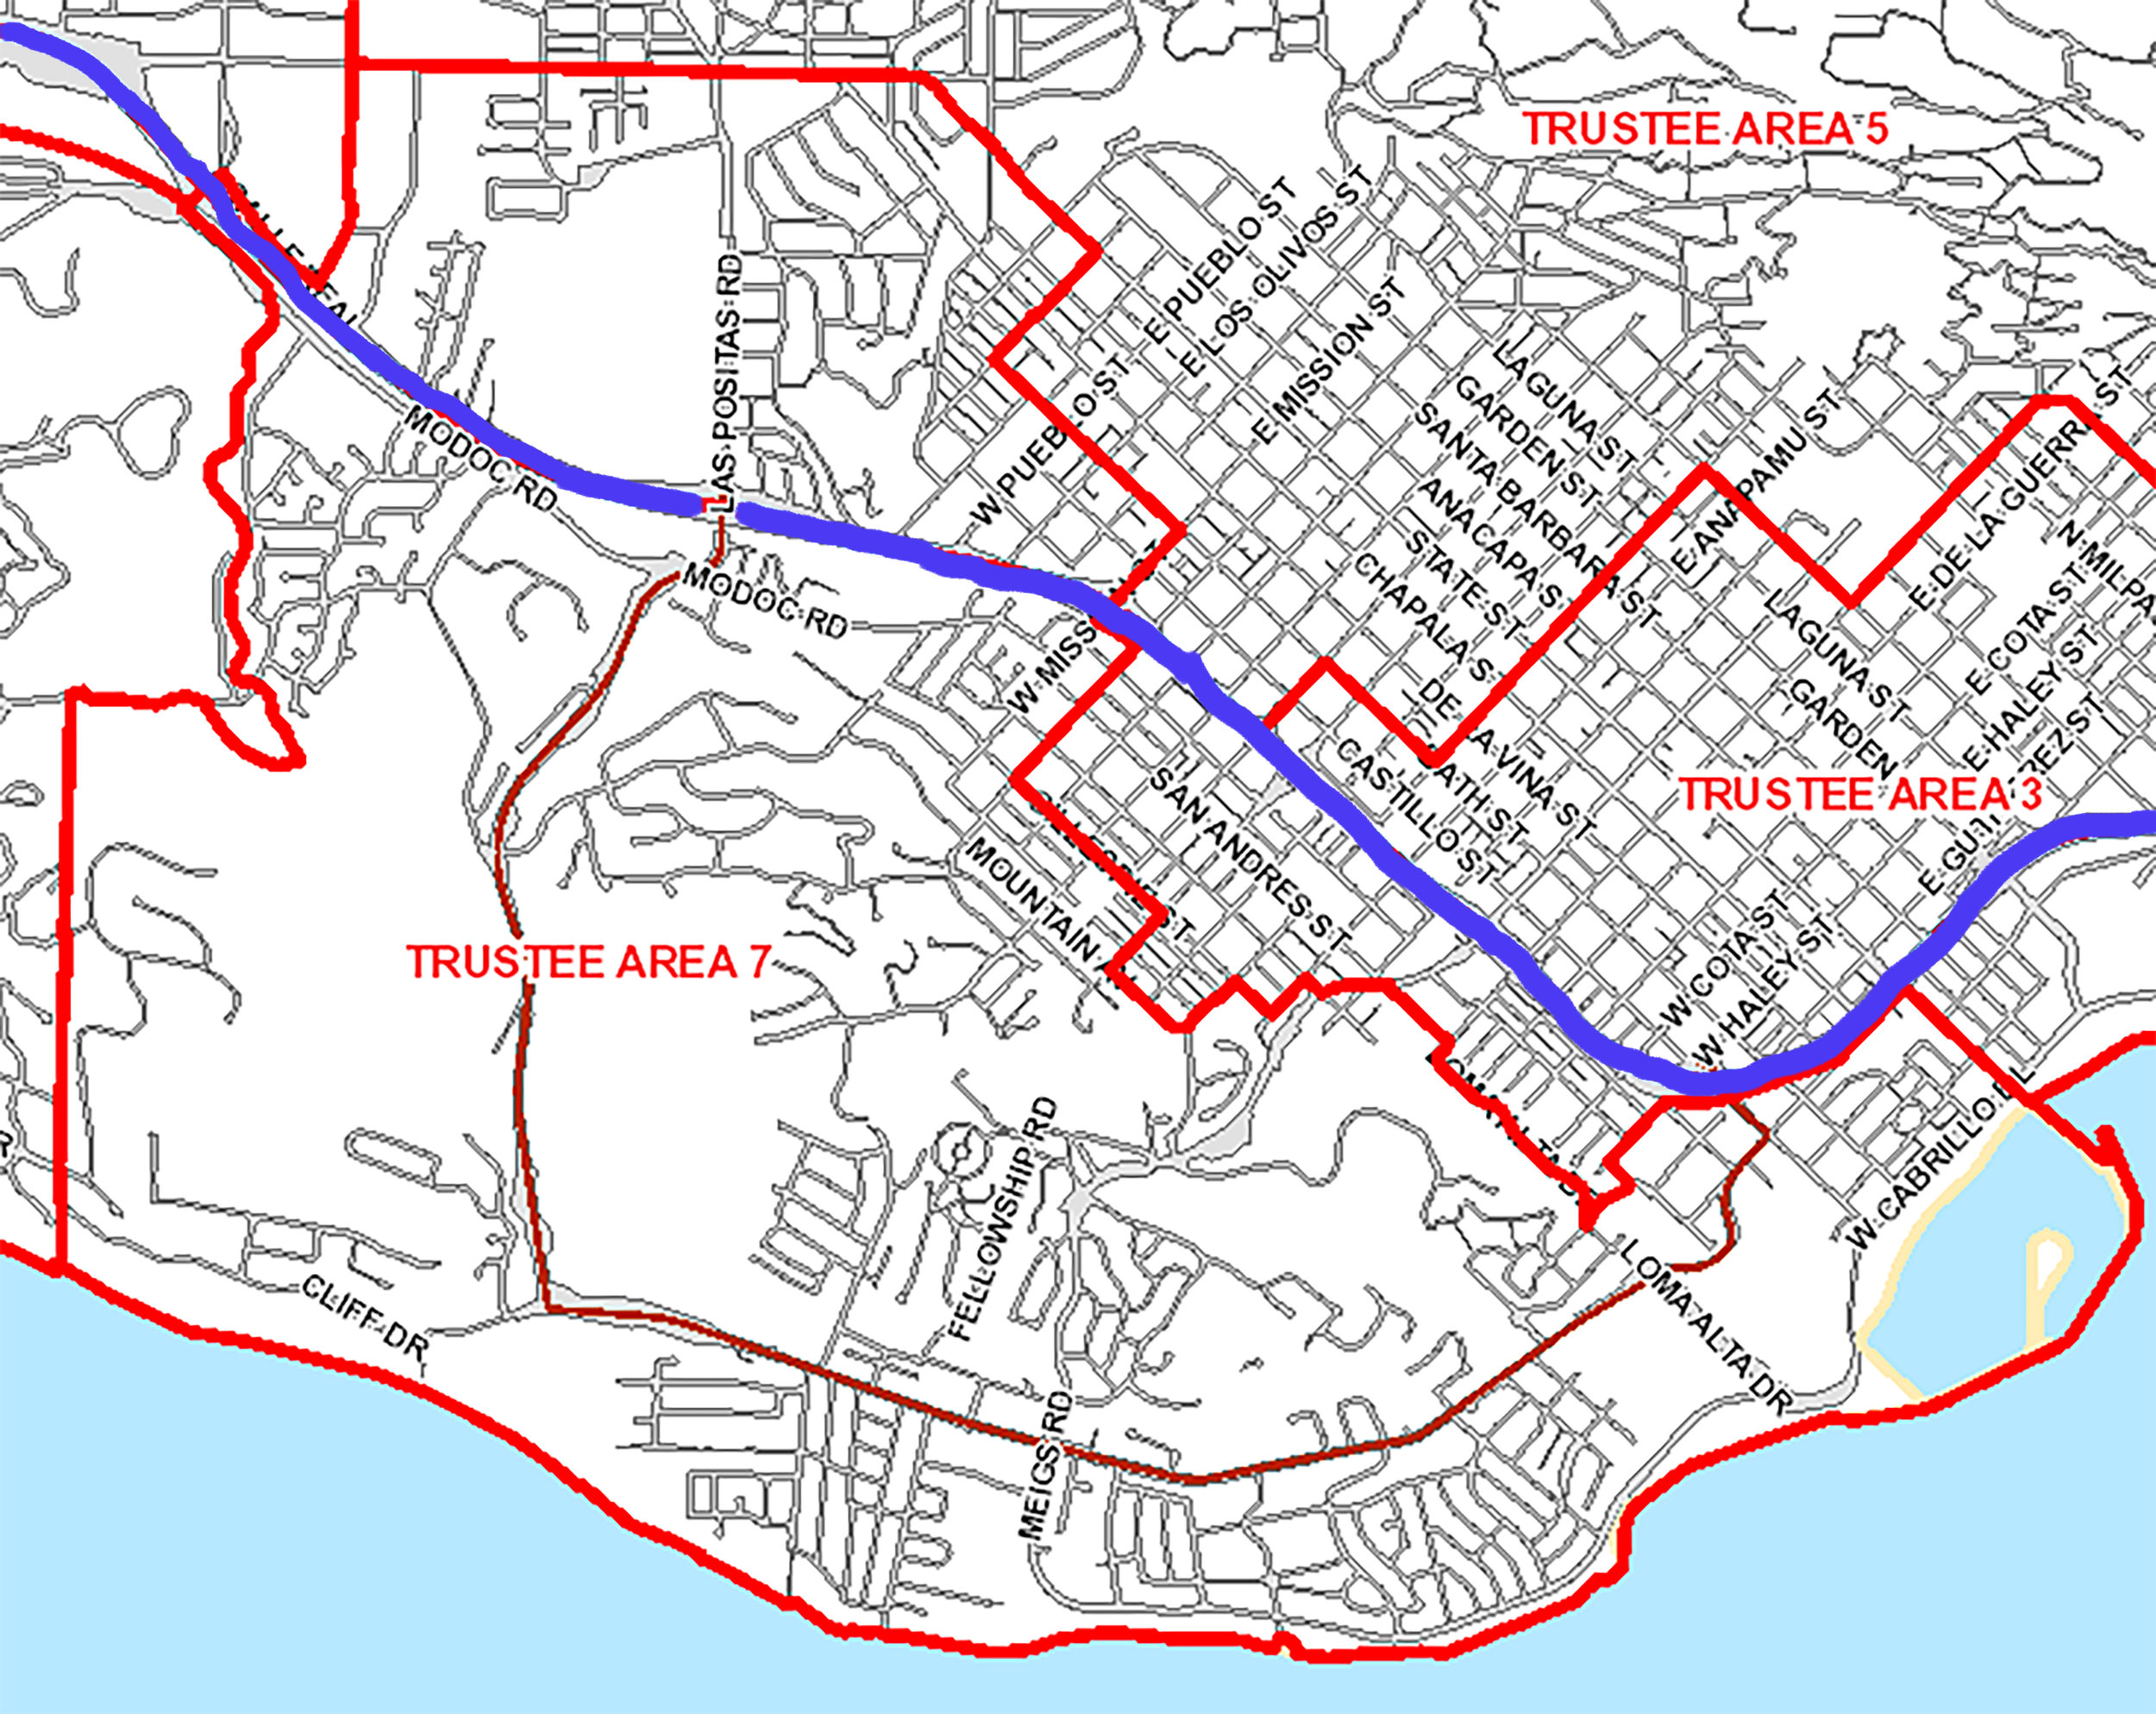 This is Trustee Area 7, including the Mesa, Hidden Valley, Samarkand, and parts of the Westside and West Beach. The blue line is the 101—if you need to see a more detailed map, there is an interactive trustee area map  here .